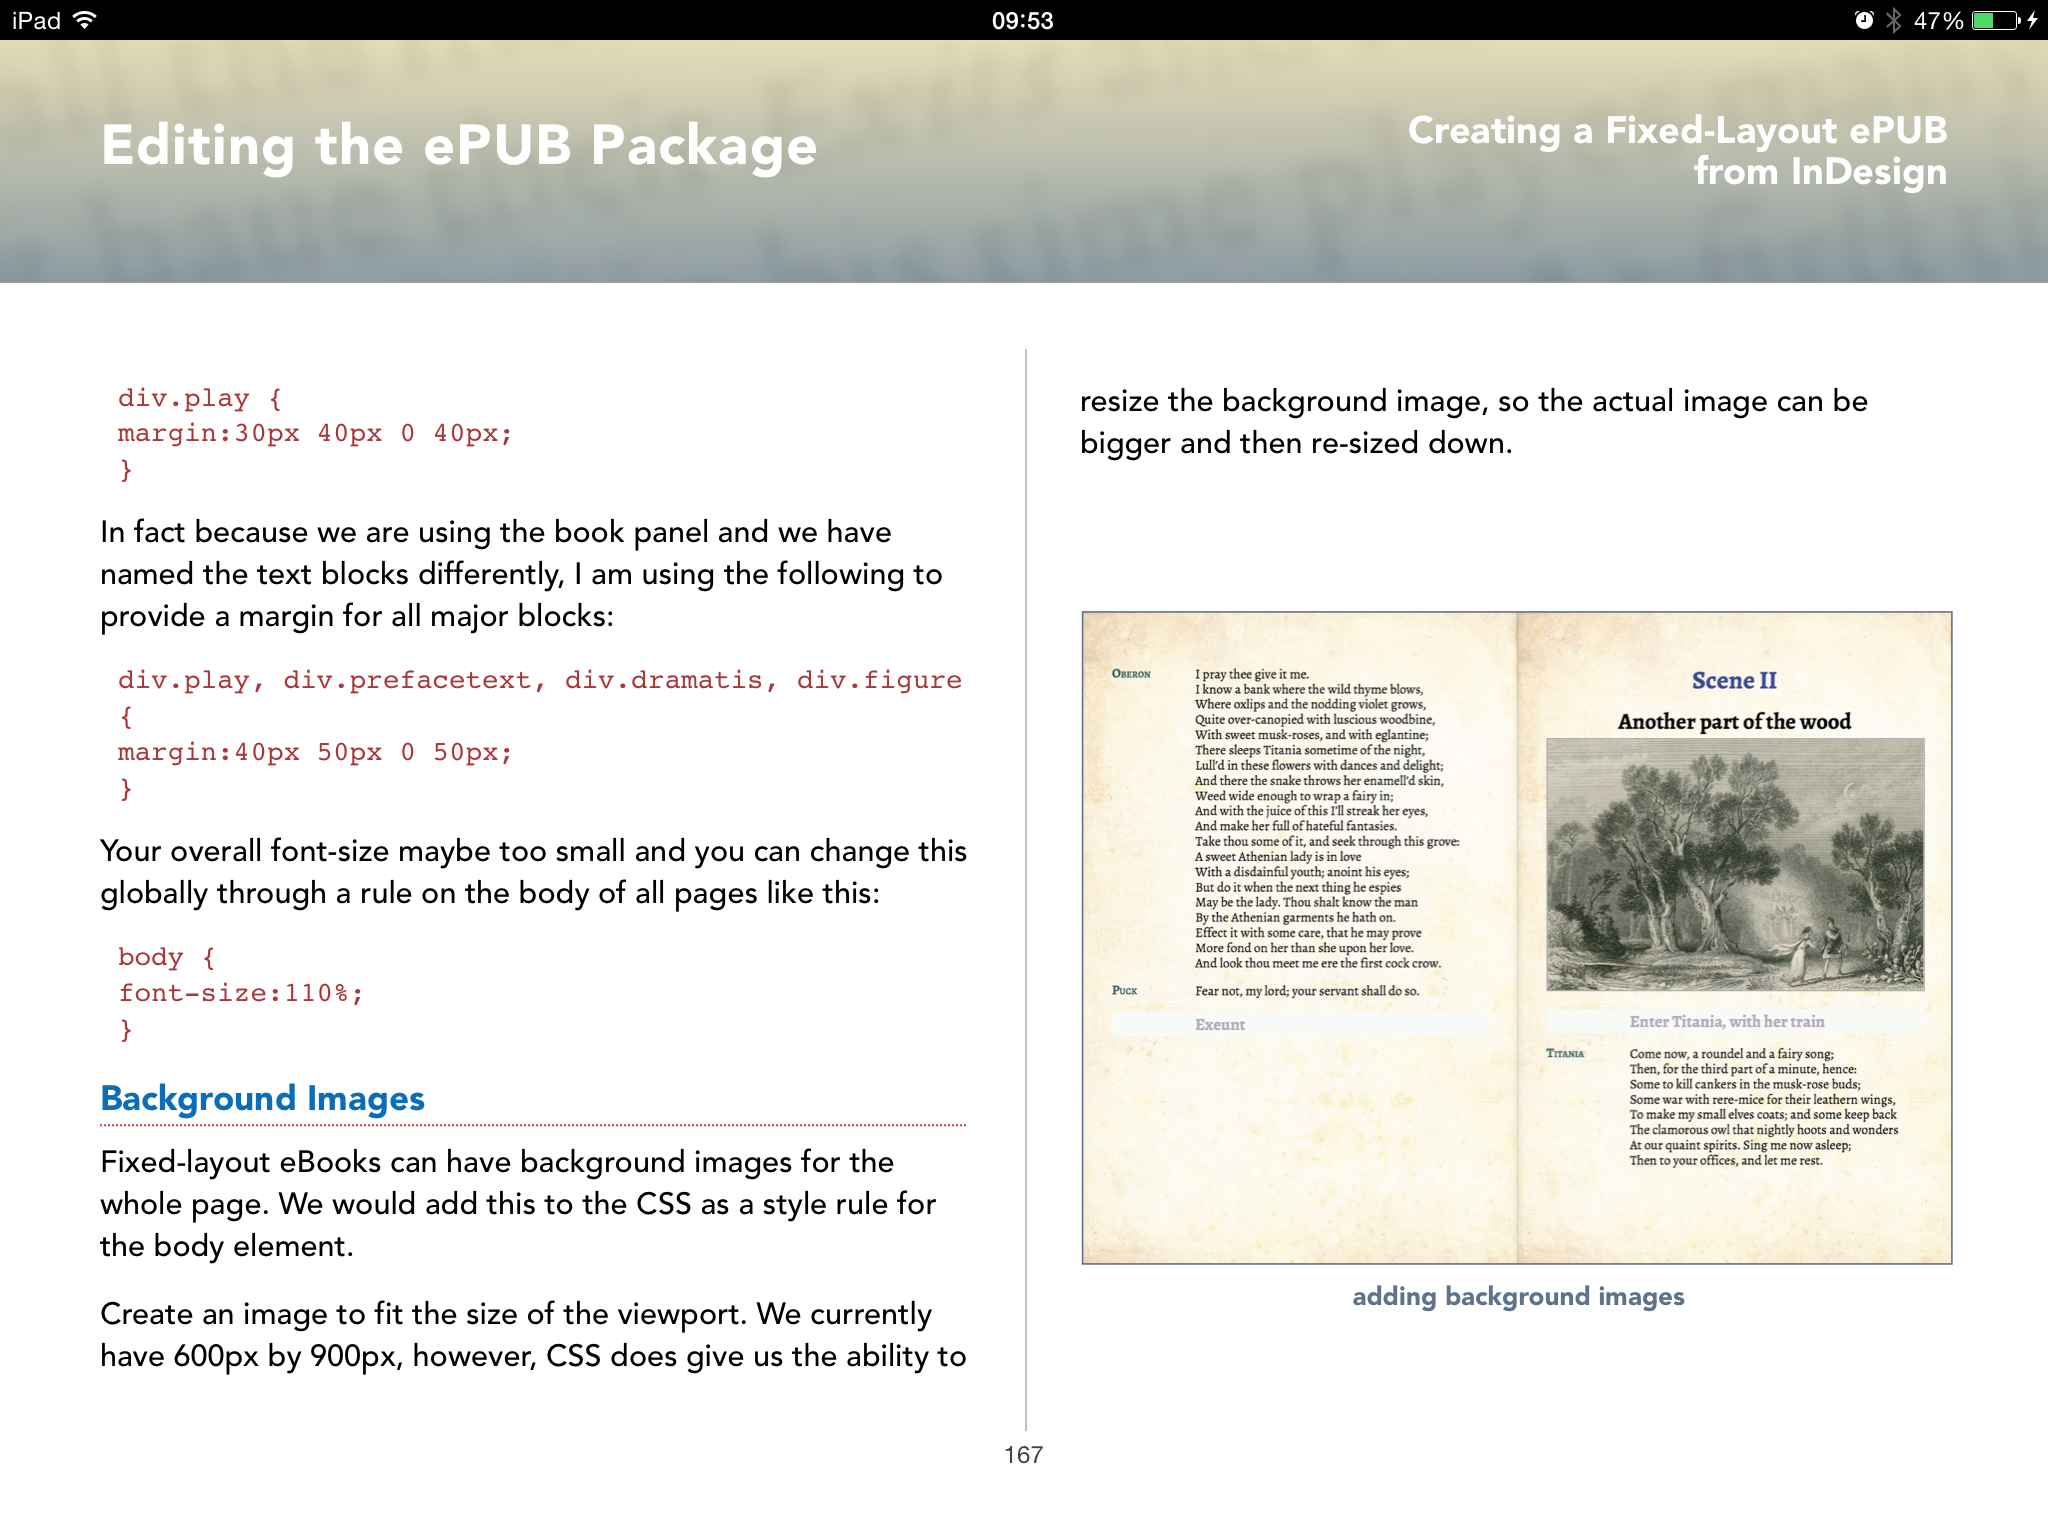 spread show editing the ePub package